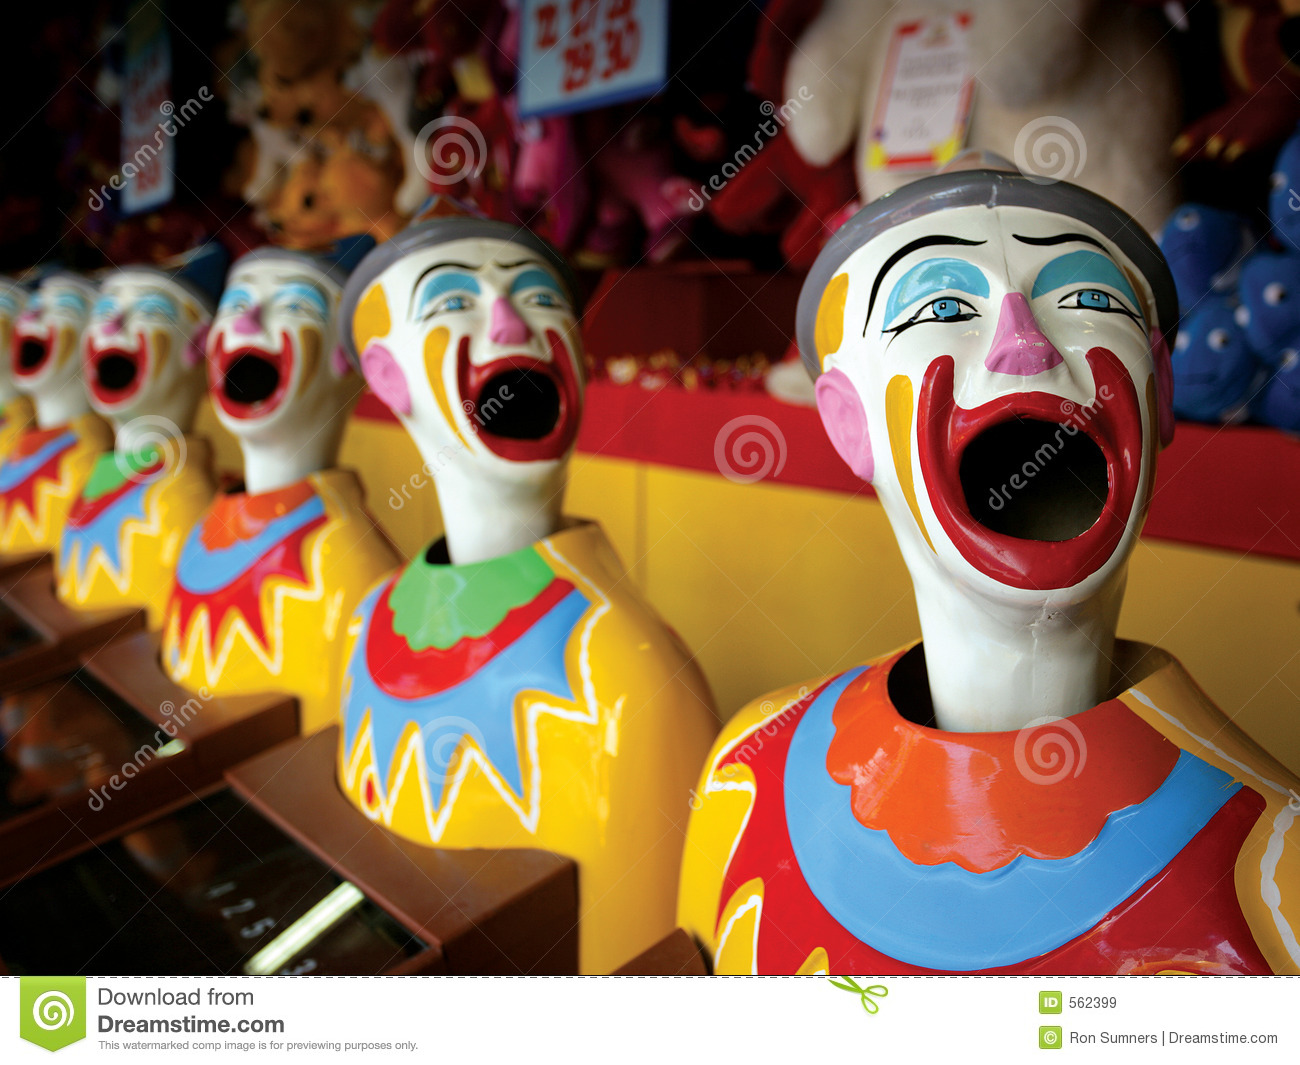 Mouthy clowns